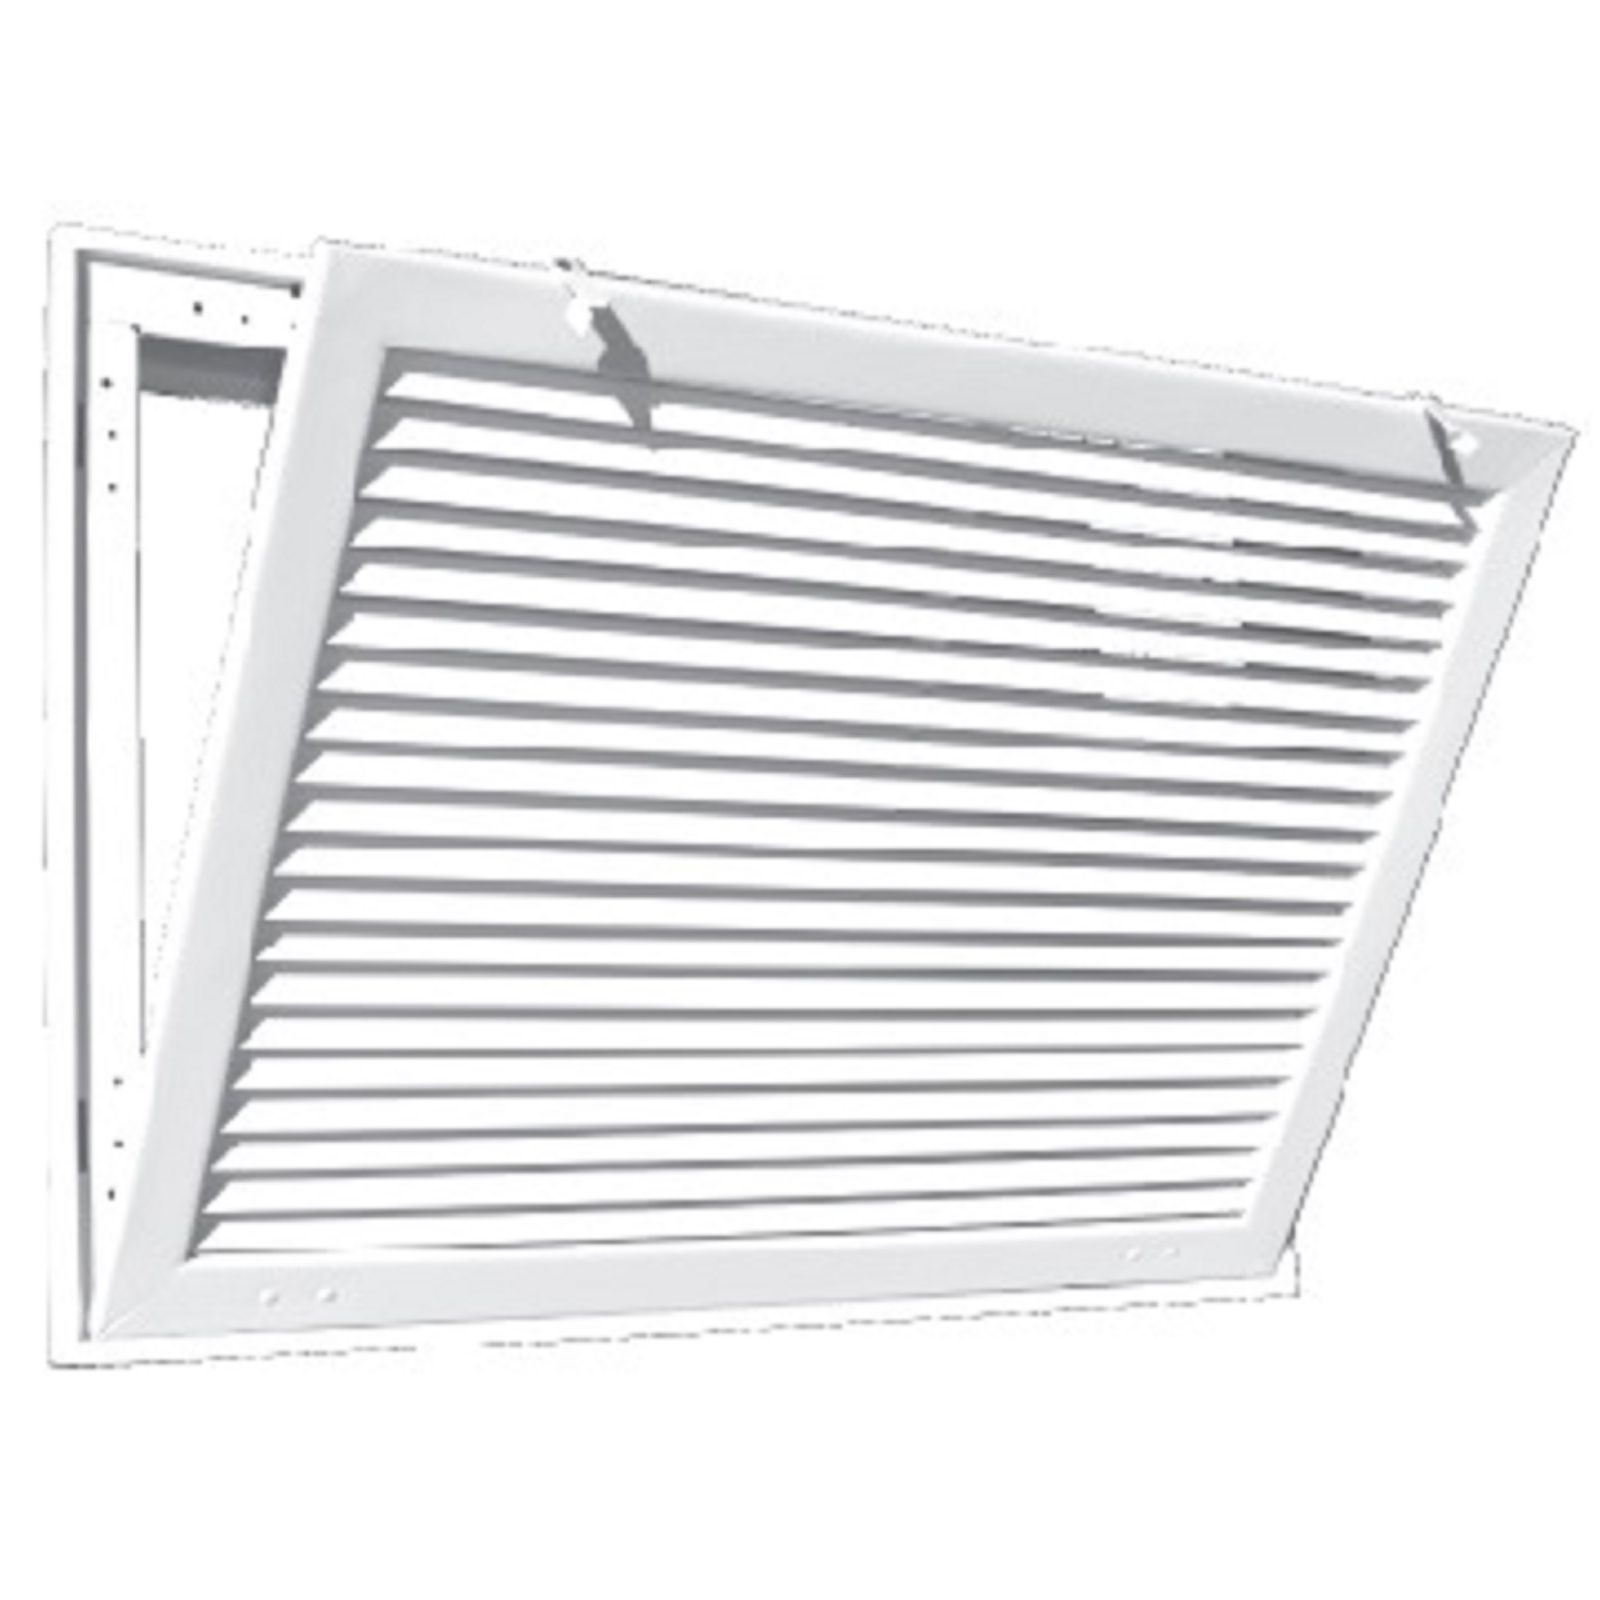 "TRUaire A290 30X24 - Aluminum Fixed Bar Return Air Filter Grille, White, 30"" X 24"""